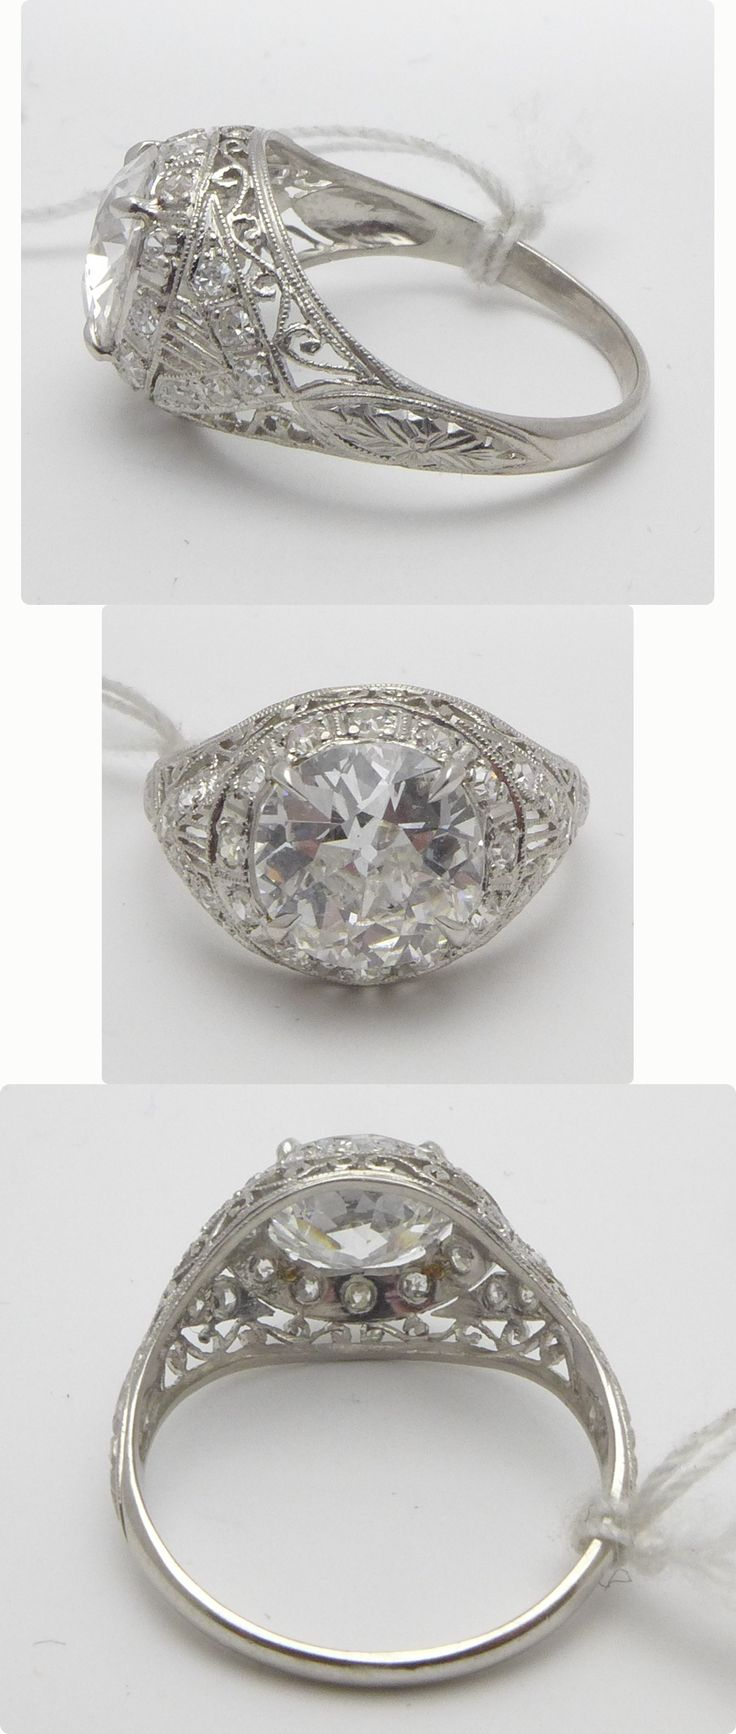 1508 Best Images About Antique Engagement Rings On. Triangle Rings. Coloured Engagement Rings. Scroll Engagement Rings. Spinel Engagement Rings. White Gold Victorian Engagement Rings. Different Rings. D Name Rings. Christmas Rings